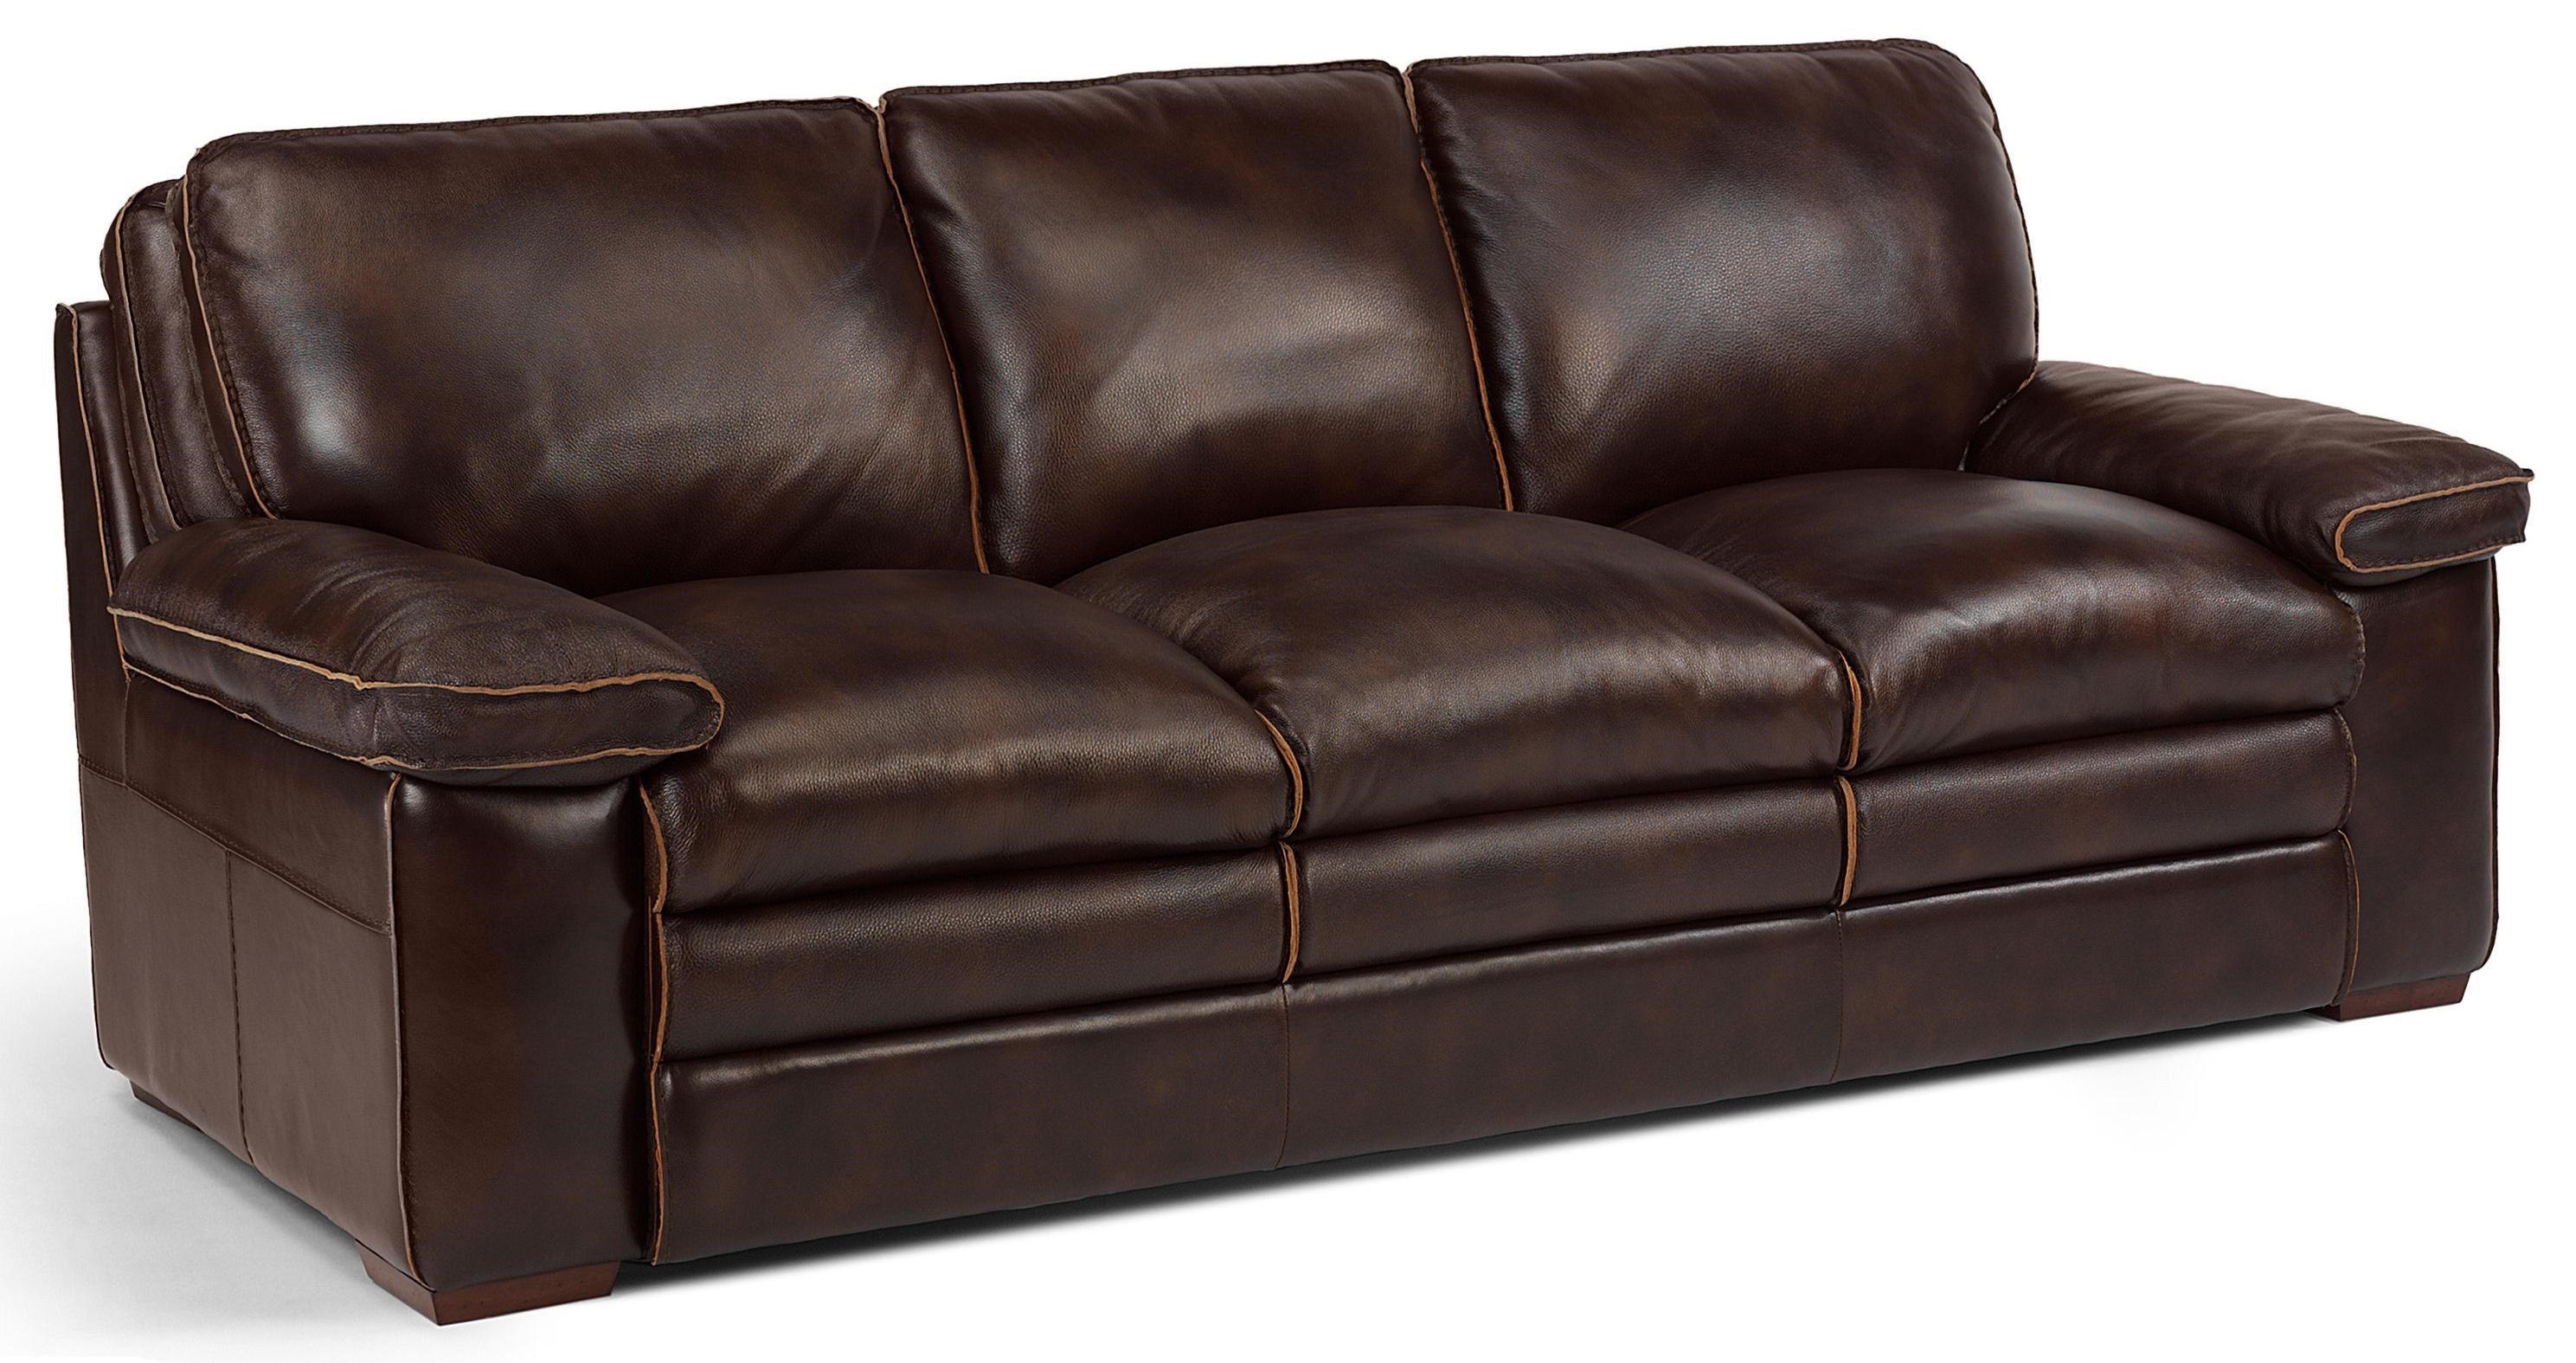 Flexsteel Latitudes   Penthouse Casual Sofa With Pillow Top Seating